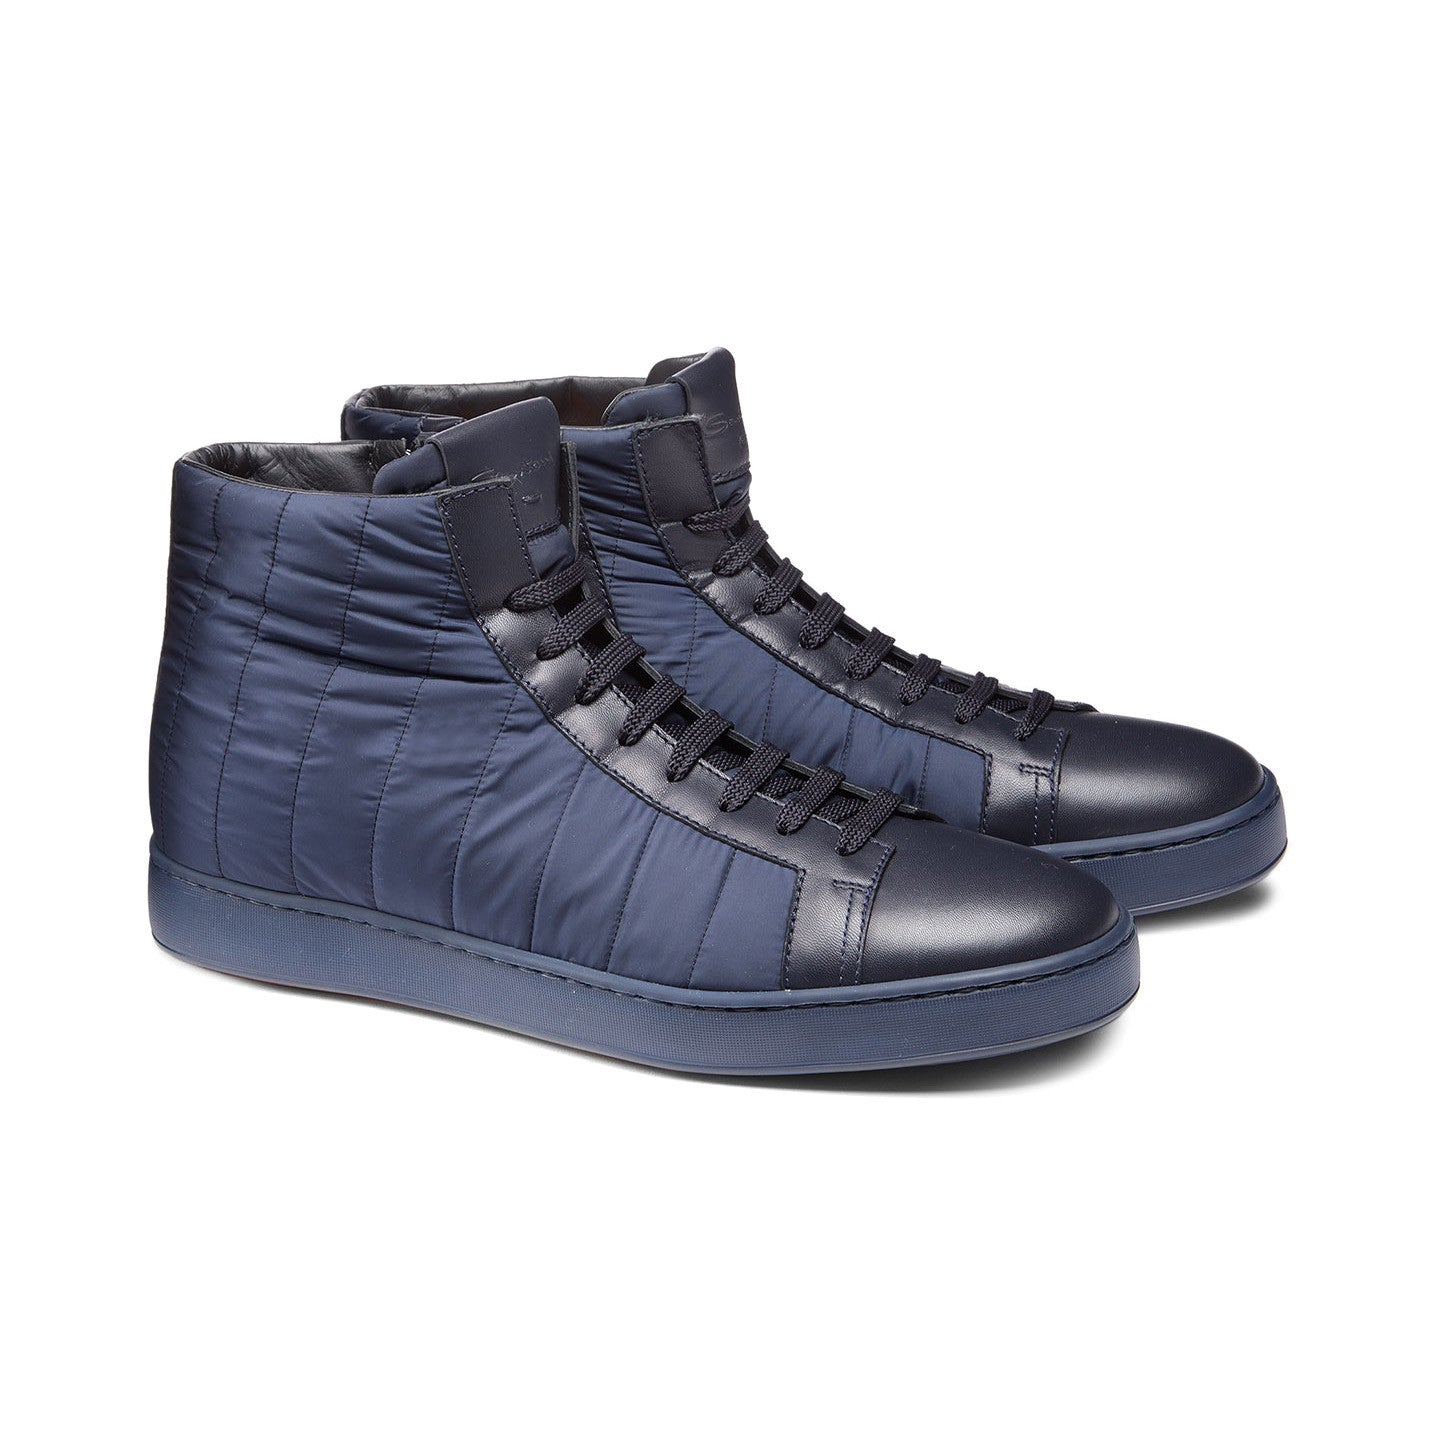 HIGH-TOP SNEAKER IN FABRIC AND LEATHER